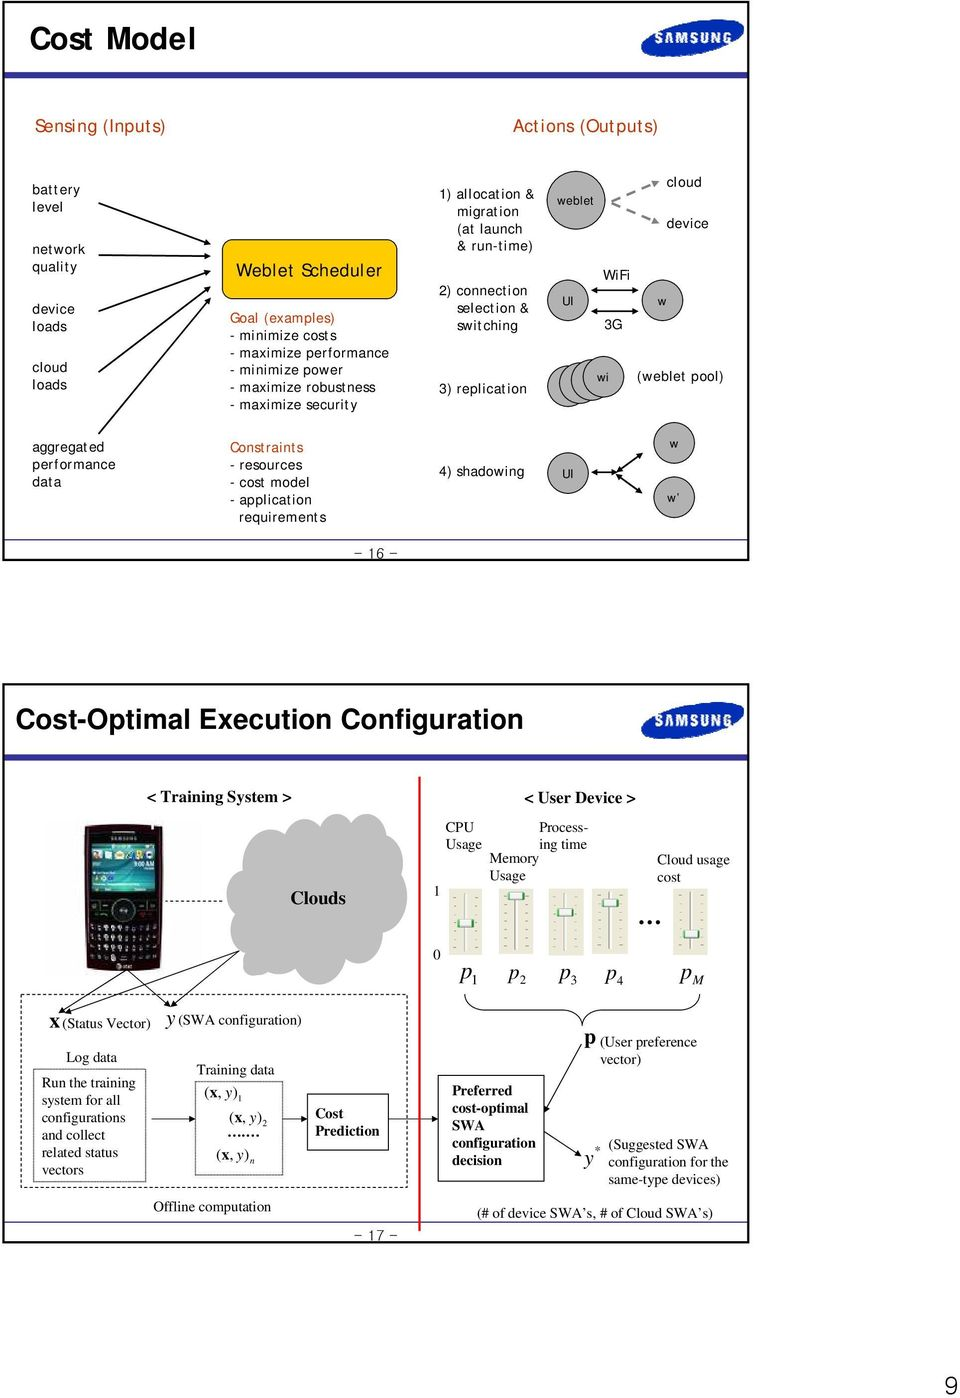 performance data Constraints - resources -cost model - application requirements 4) shadowing UI w w Cost-Optimal Execution Configuration < Training System > < User Device > s -17- CPU Processing time